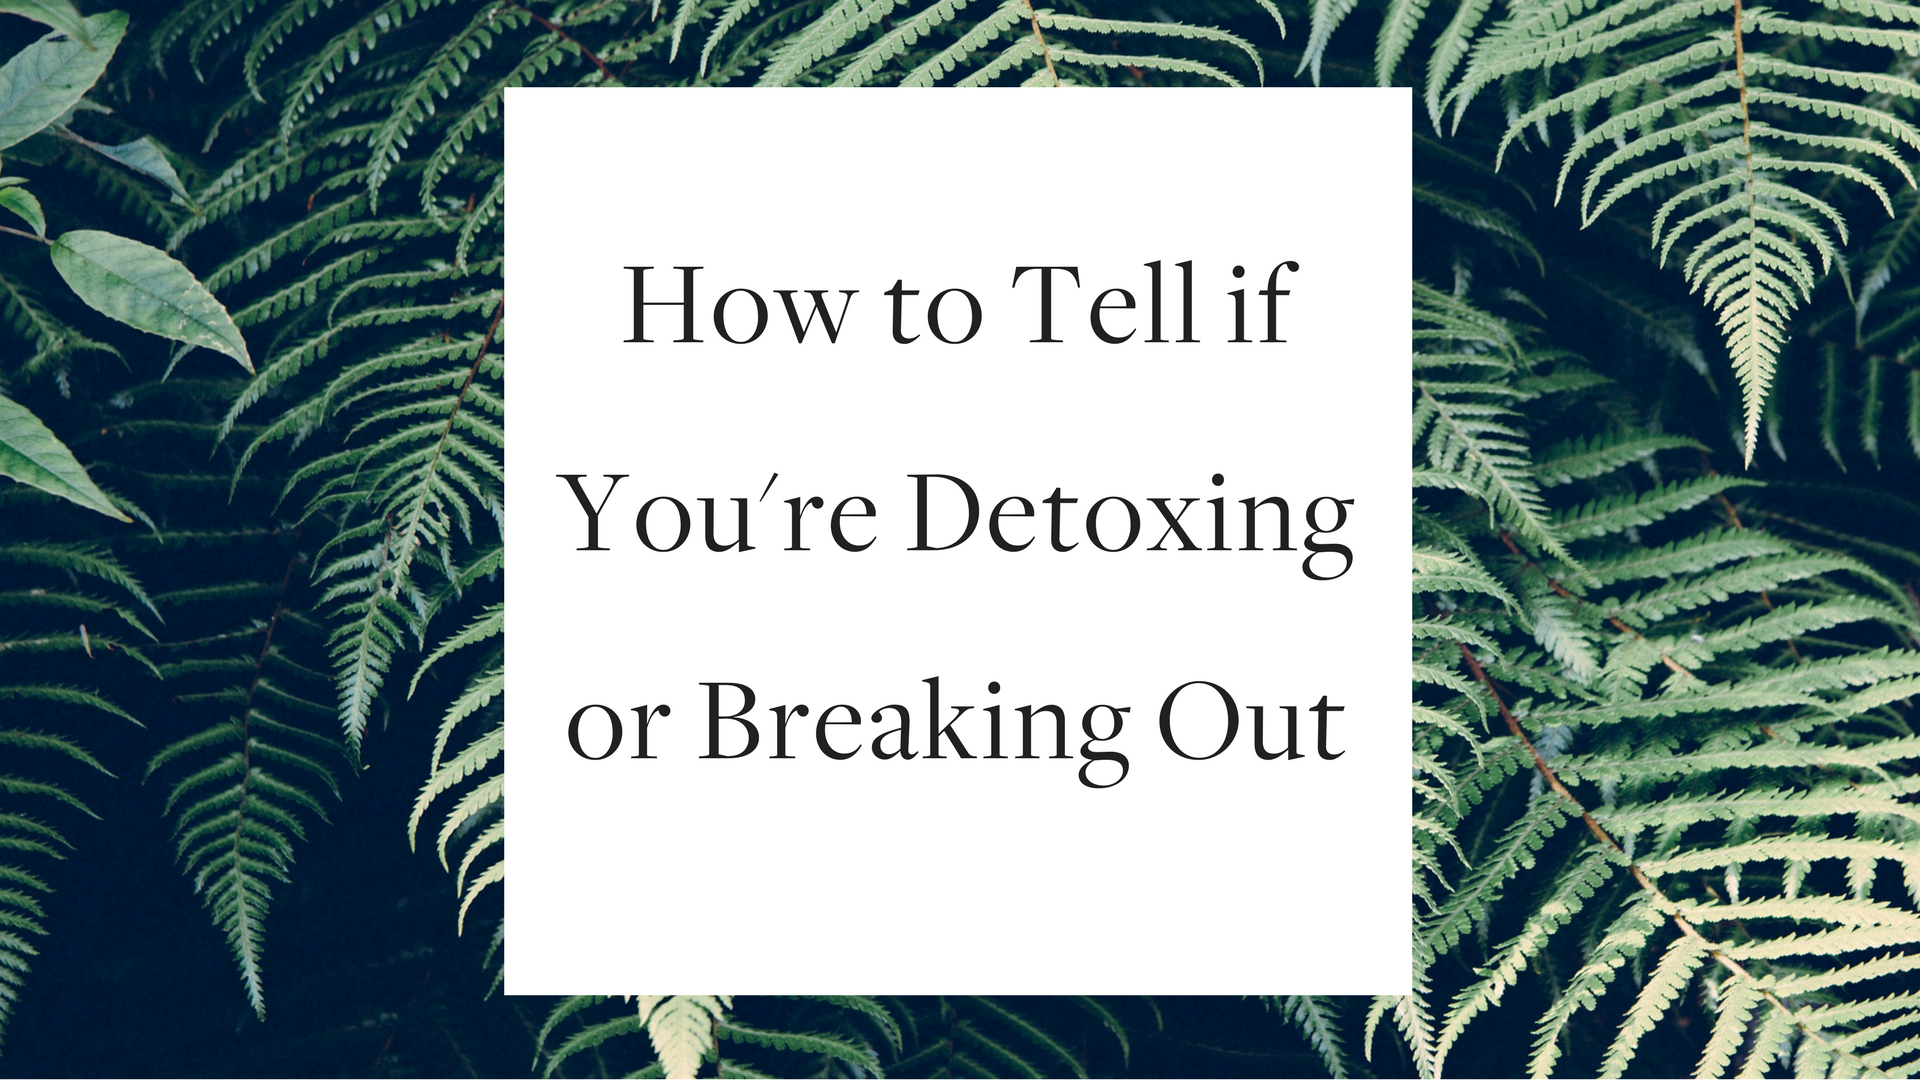 How to Tell if You're Detoxing or Breaking Out